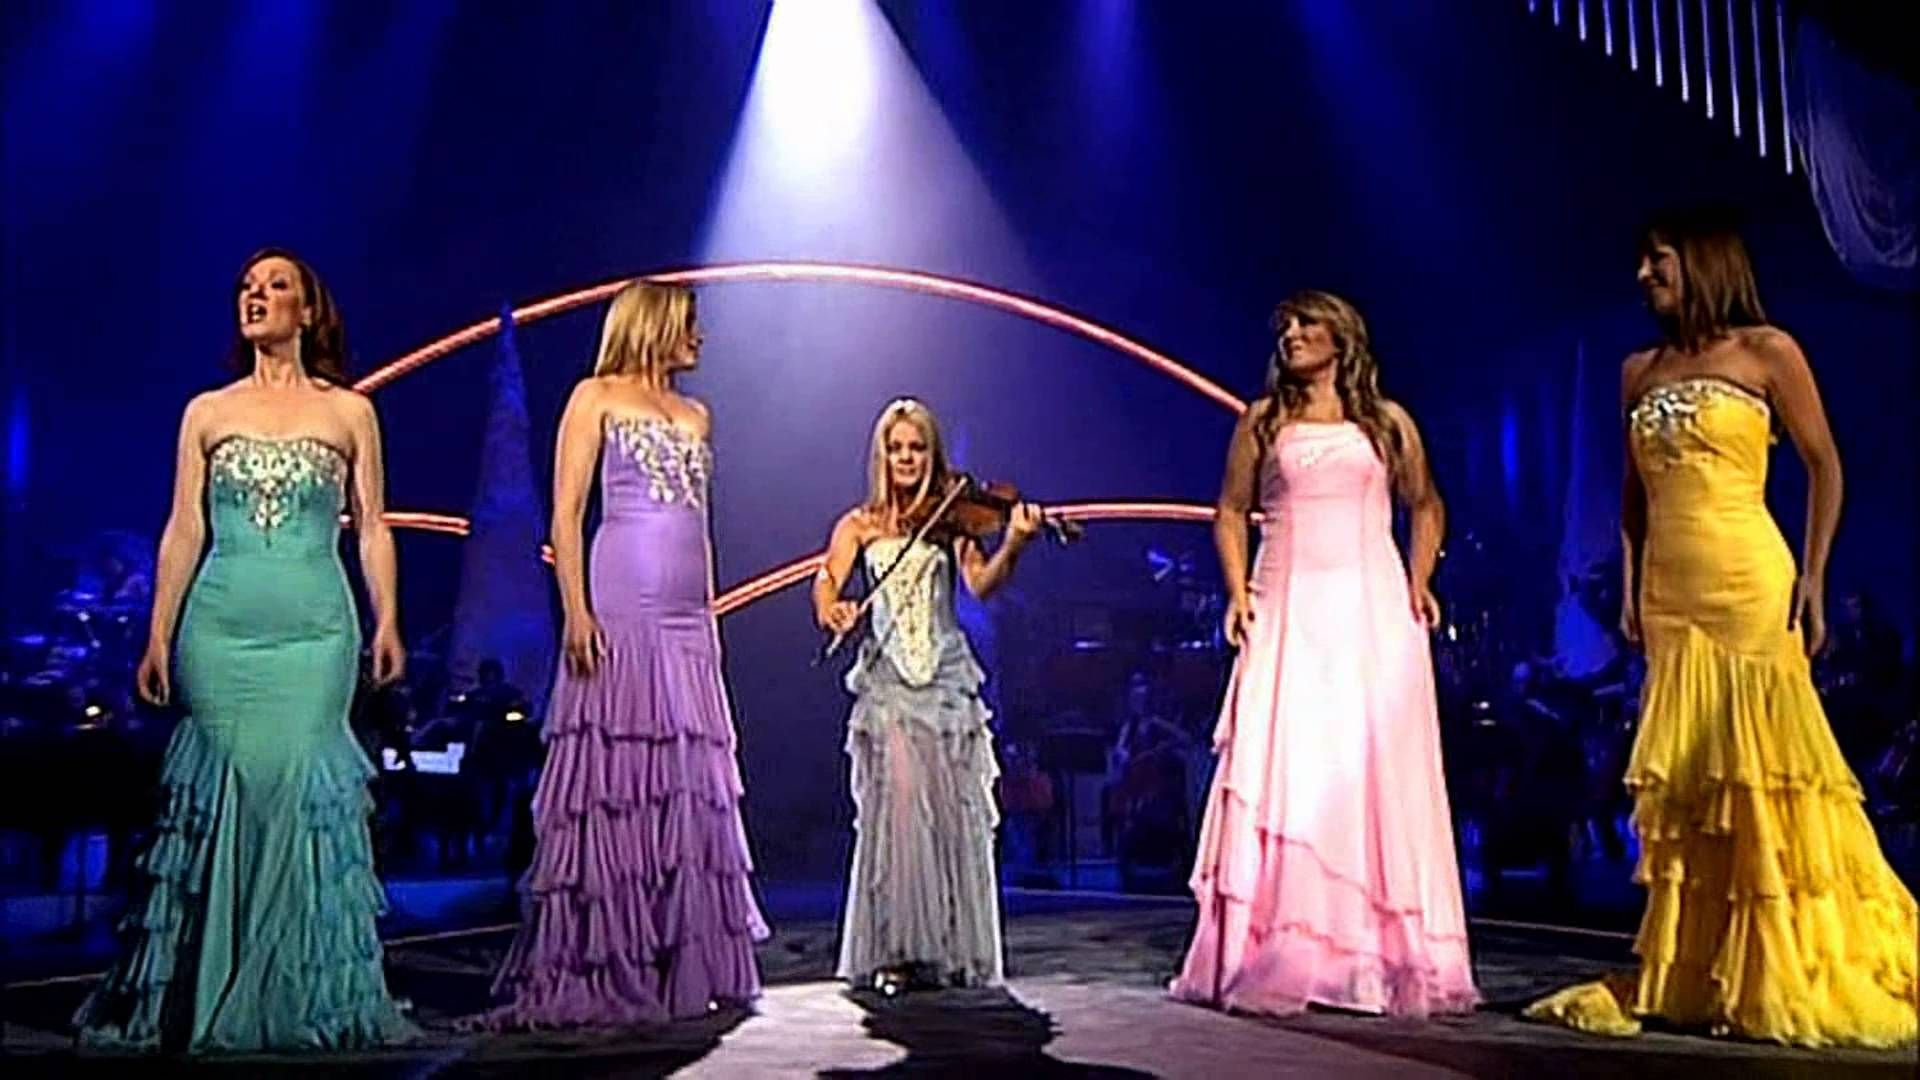 Celtic Woman Christmas.Celtic Woman O Holy Night Music Christmas